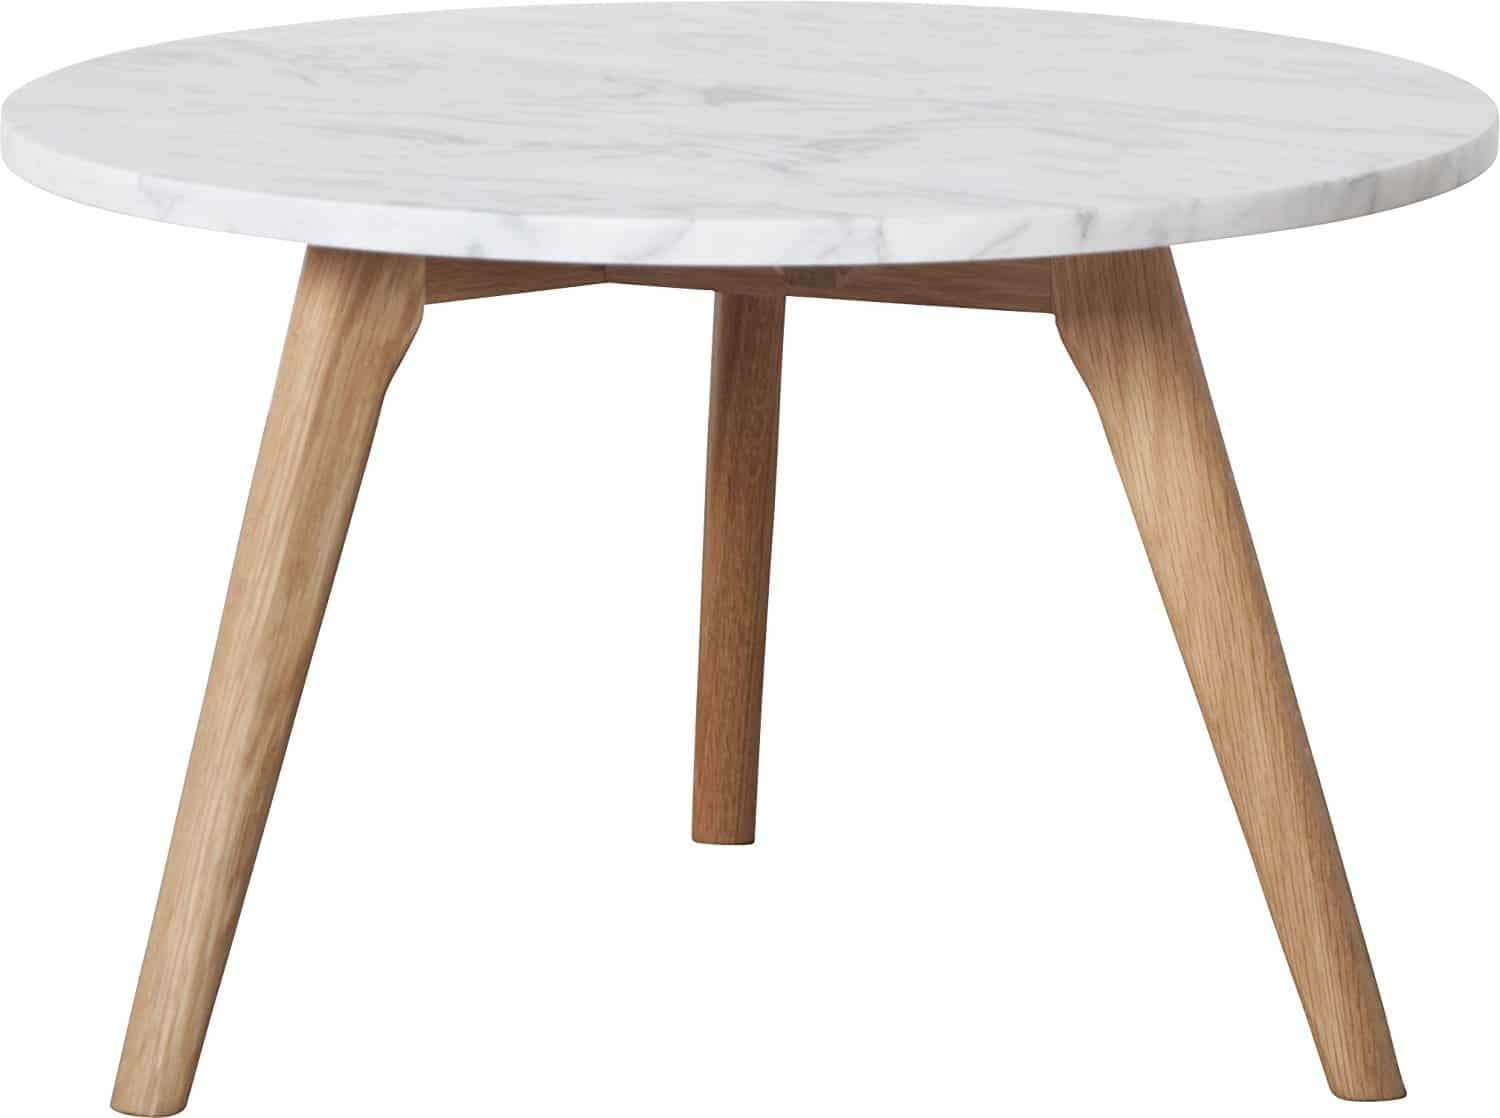 Zuiver Marmortisch Table Basse Scandinave 33 Modèles D 39inspiration Nordique